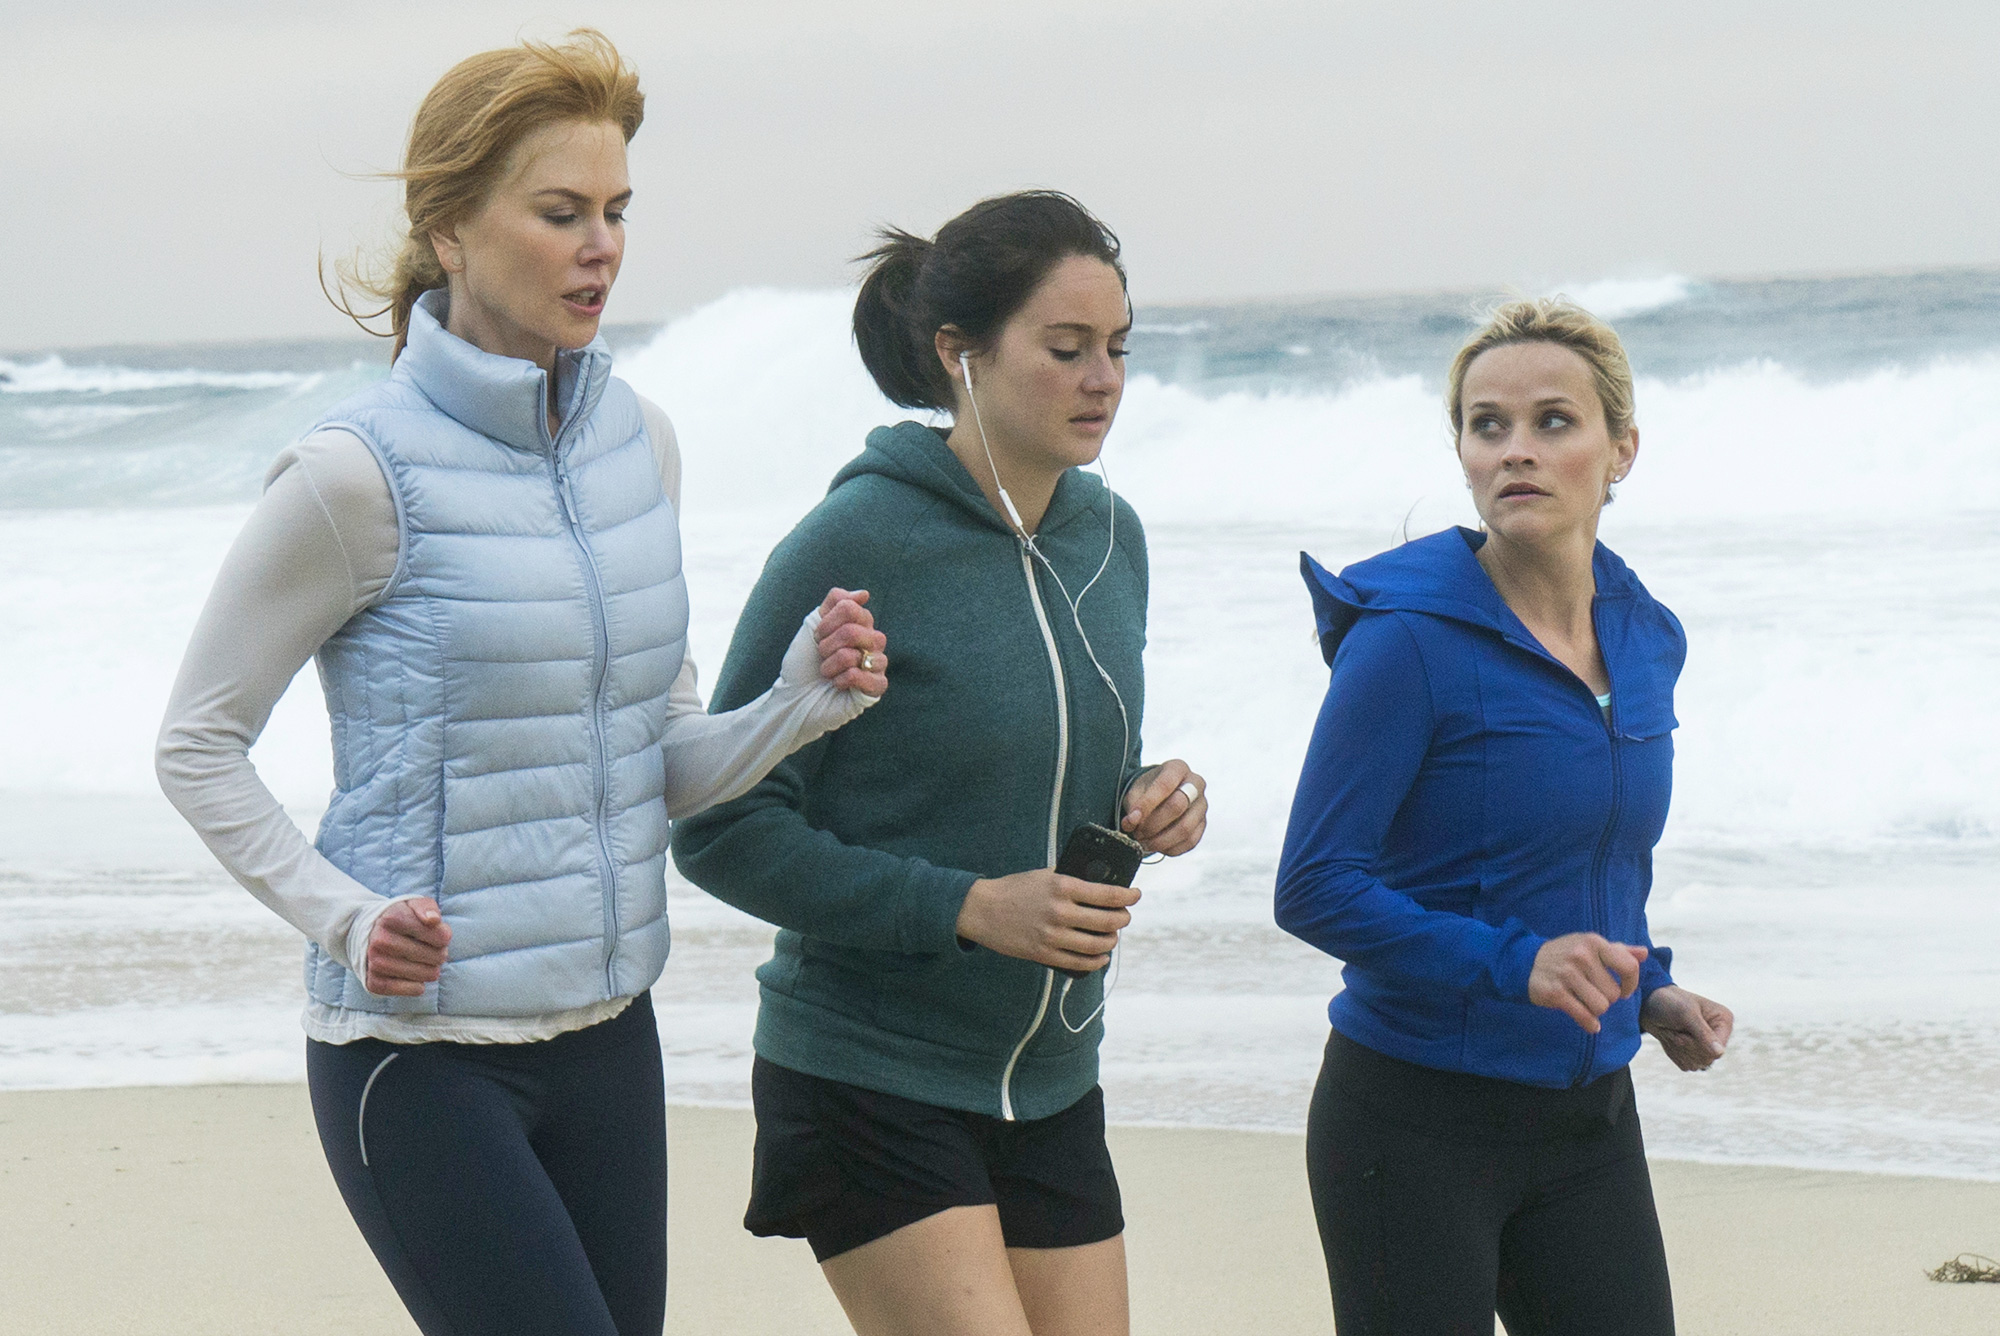 Woodley, Dern on board for 'Big Little Lies' season 2